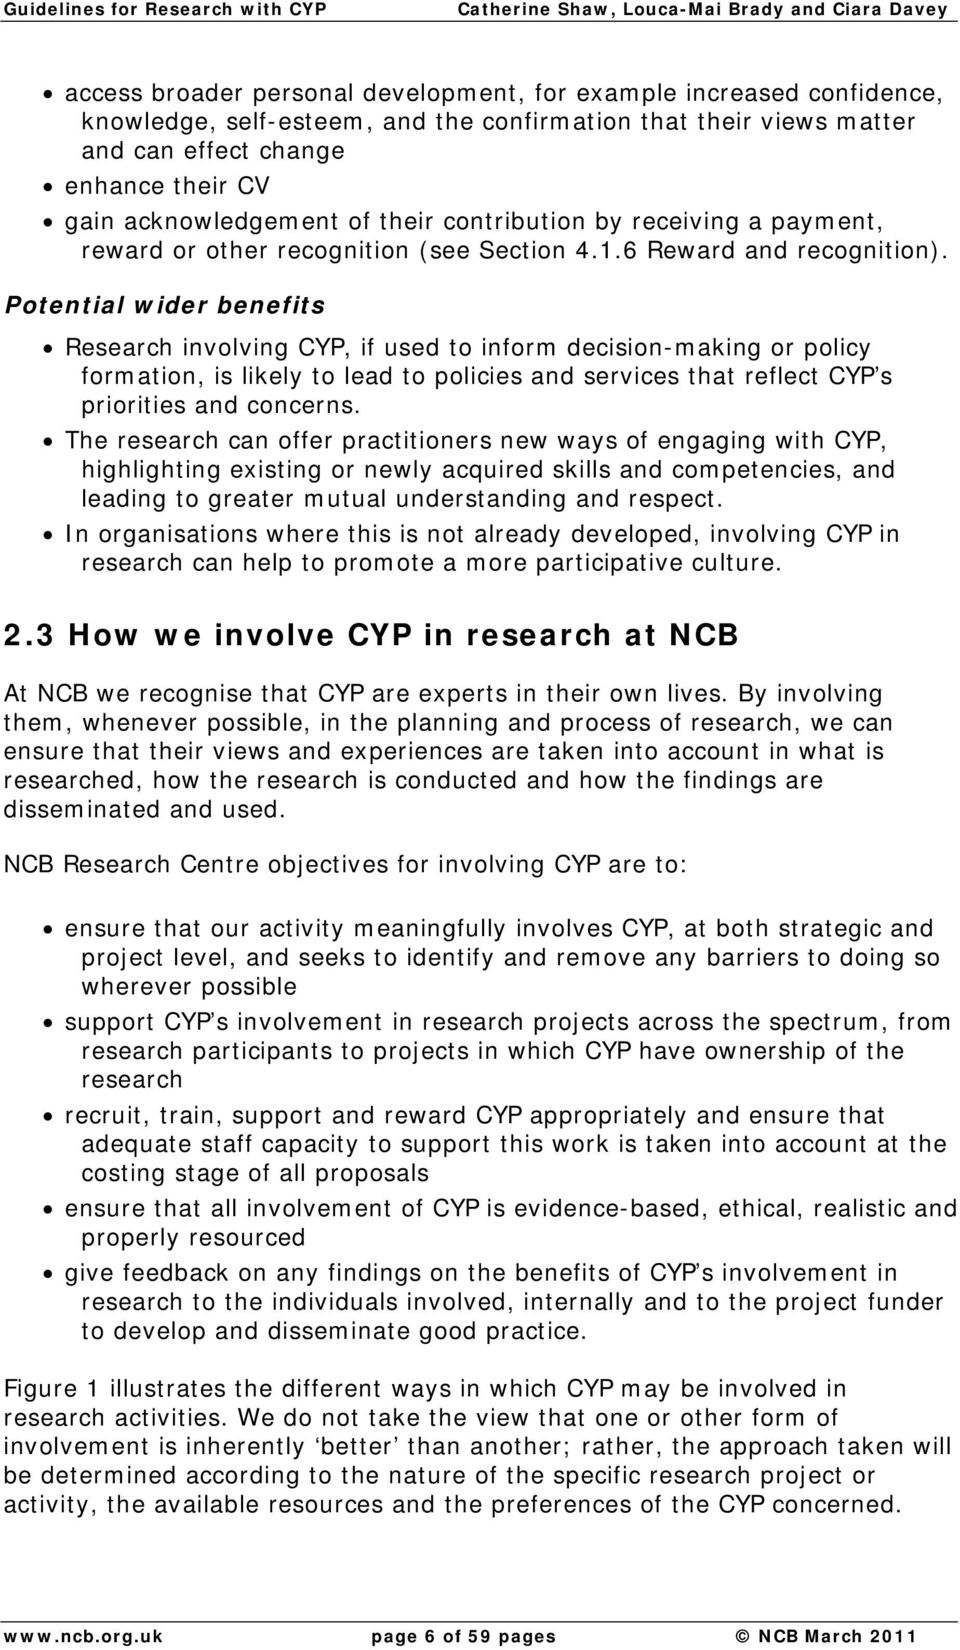 Potential wider benefits Research involving CYP, if used to inform decision-making or policy formation, is likely to lead to policies and services that reflect CYP s priorities and concerns.